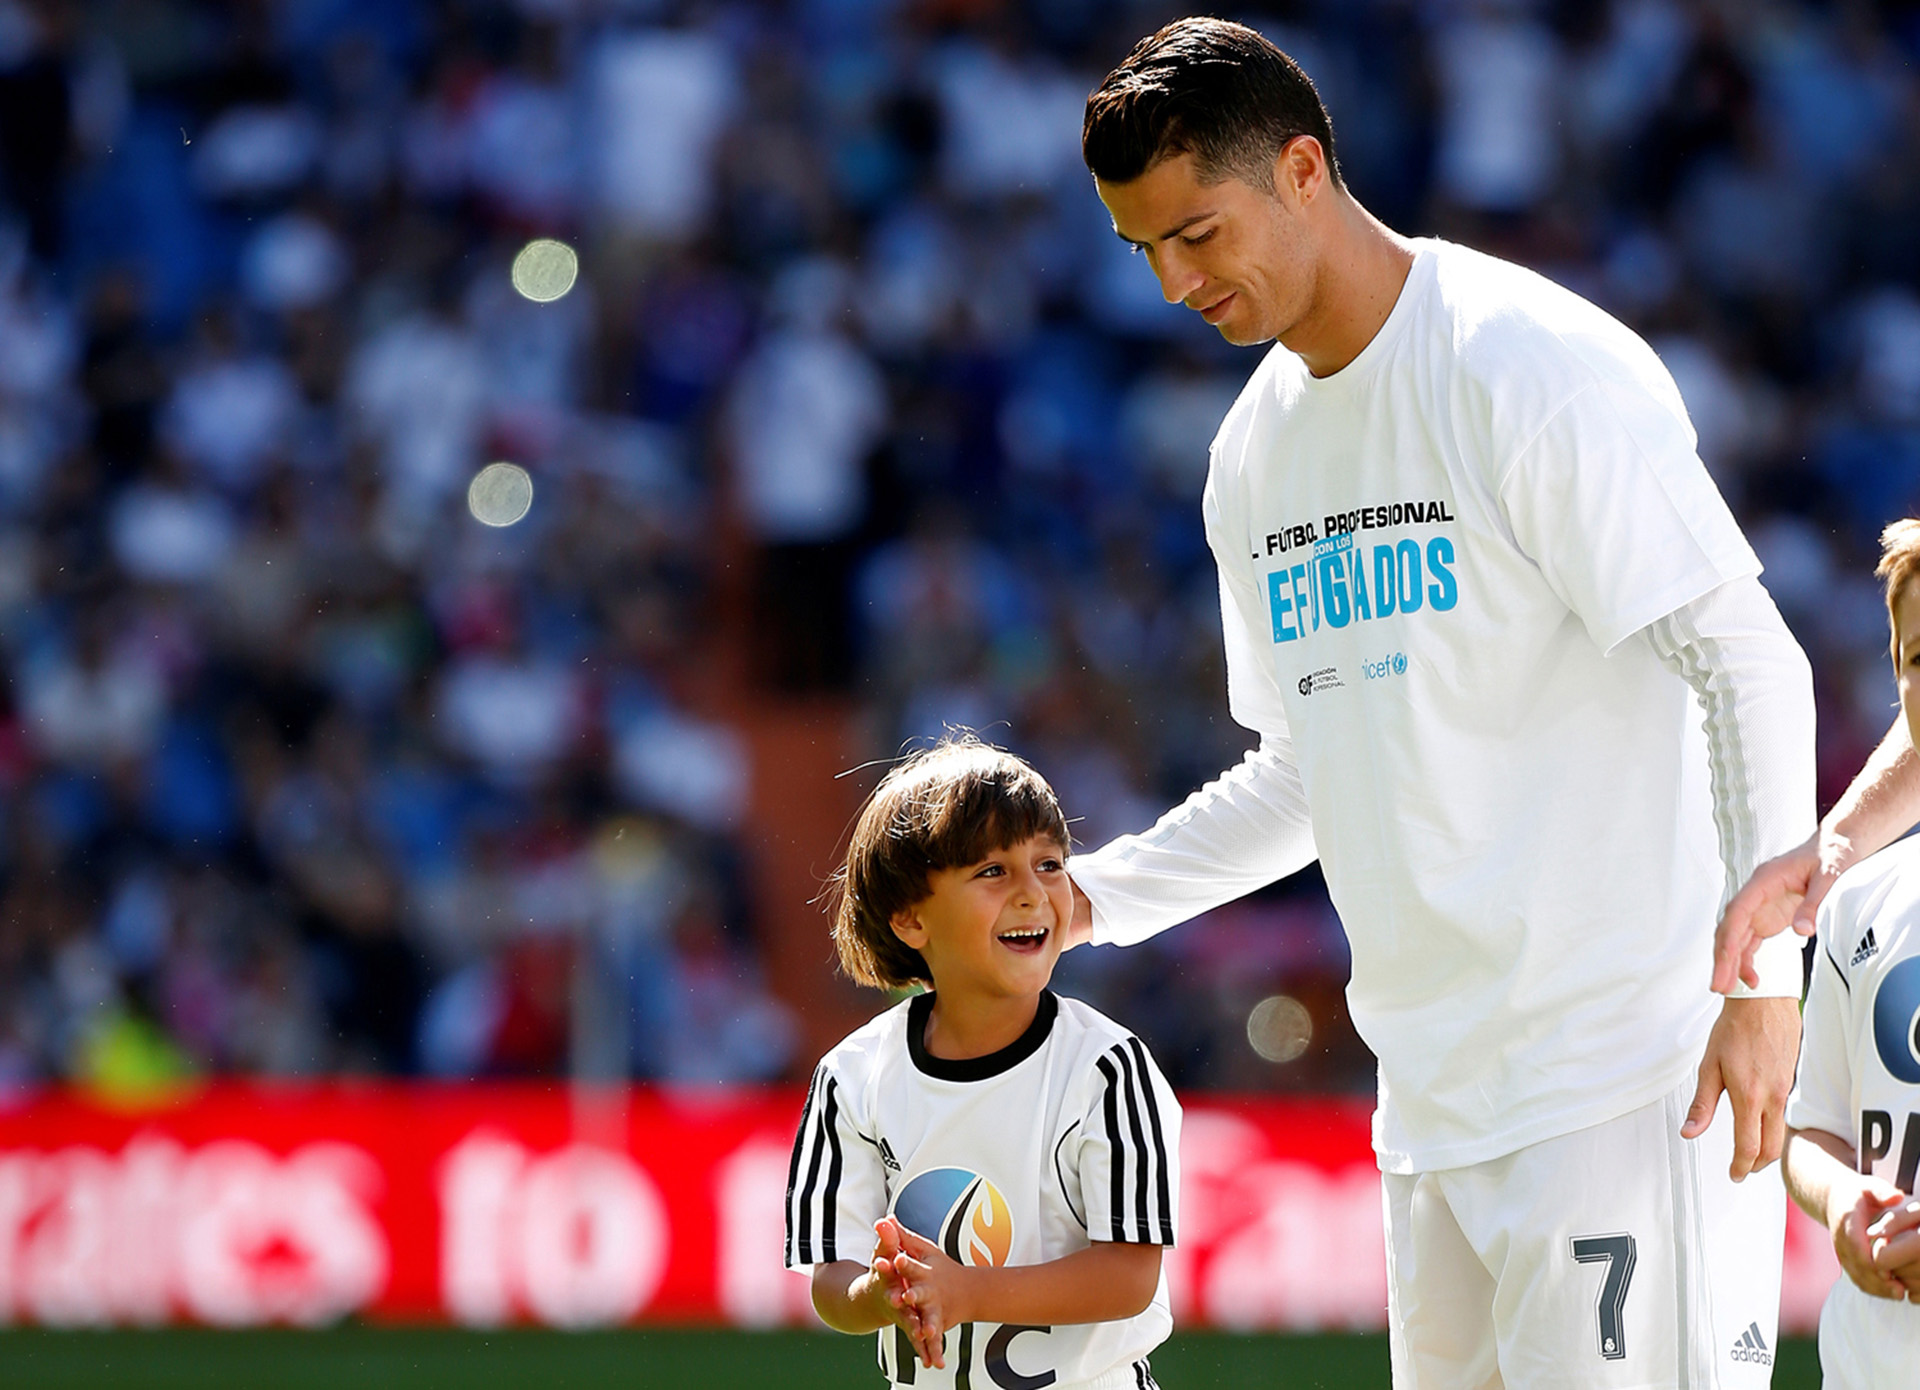 "ATTENTION EDITORS: SPANISH LAW REQUIRES THAT THE FACES OF MINORS ARE MASKED IN PUBLICATIONS WITHIN SPAIN - Zaid, son of Osama Abdul Mohsen, smiles as he stands next to Real Madrid's Cristiano Ronaldo before the Spanish first division soccer match against Granada at Santiago Bernabeu stadium in Madrid, Spain, September 20, 2015. Mohsen's story went viral after he was filmed being tripped up by a camerawoman as he fled police near the Hungarian border with Serbia last September. He was carrying his youngest son Zaid in his arms at the time, and the two fell sprawling on the ground. Footage of the incident helped bring him to the attention of a soccer training school in Getafe on the outskirts of Madrid, which found him work as a liaison officer. REUTERS/Sergio Perez/File Photo    SEARCH ""REFUGEE PEREZ"" FOR THIS STORY. SEARCH ""THE WIDER IMAGE"" FOR ALL STORIES        - RTX2CXCN"